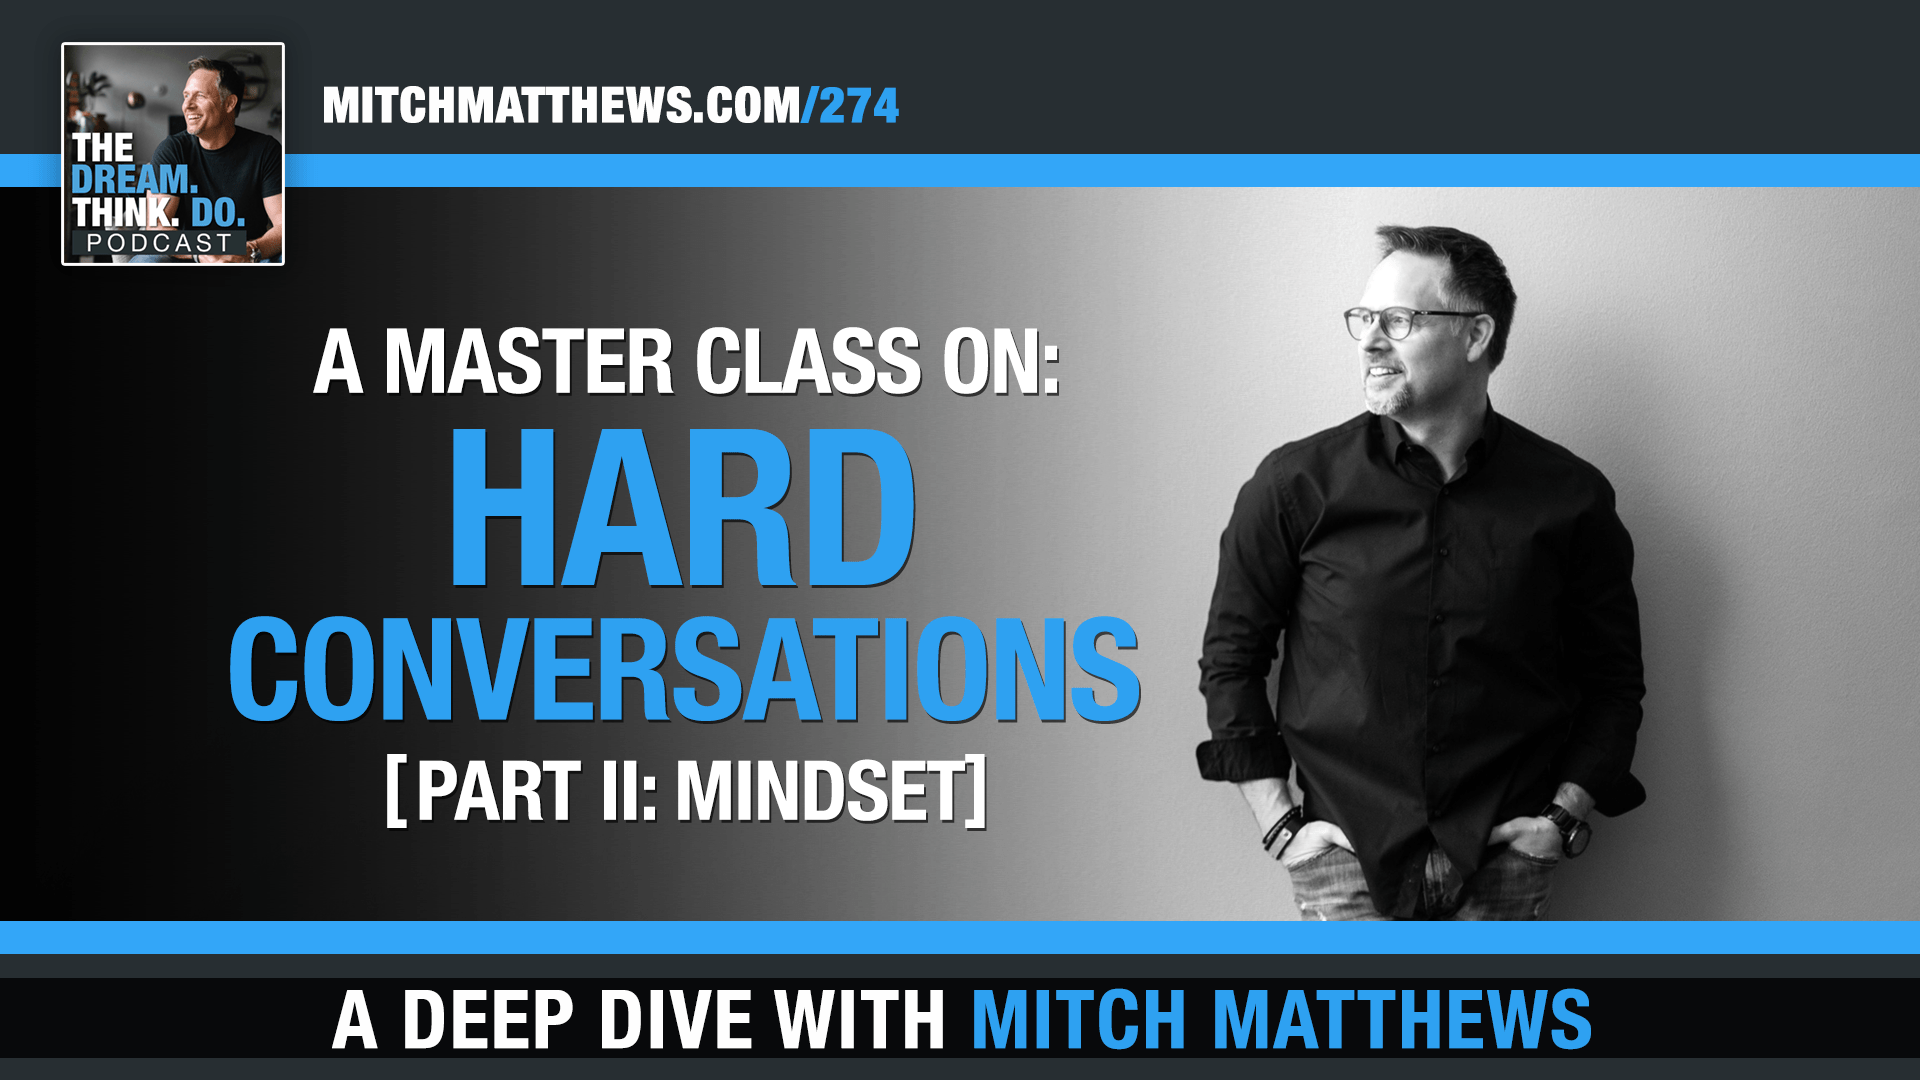 Masterclass on Hard Conversations